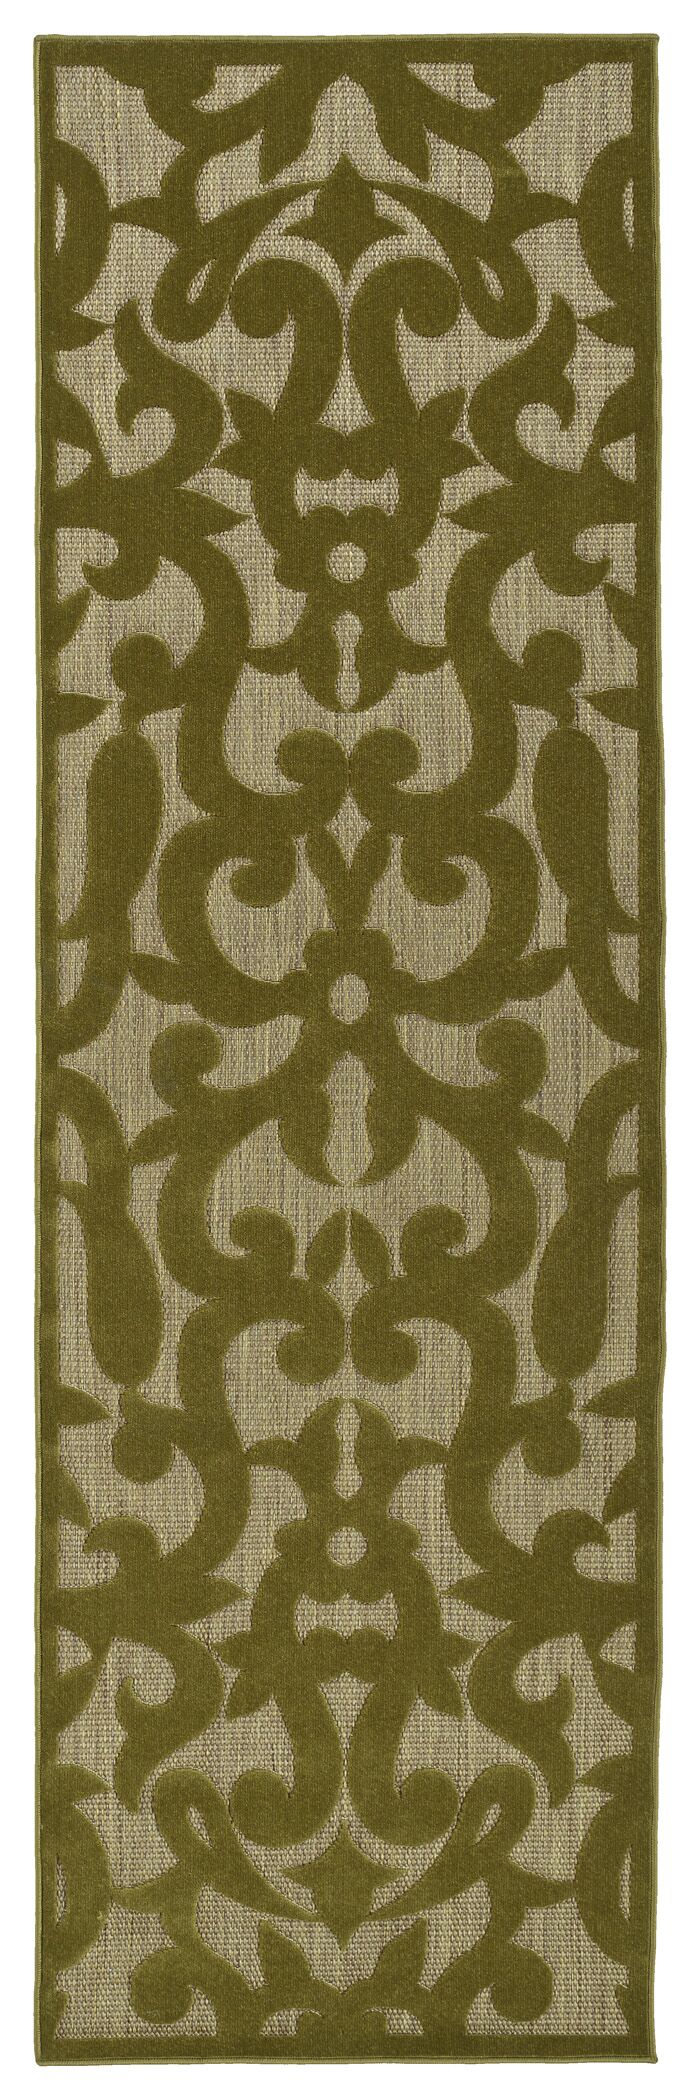 Covedale Machine Woven Olive Indoor/Outdoor Area Rug Rug Size: Rectangle 7'10